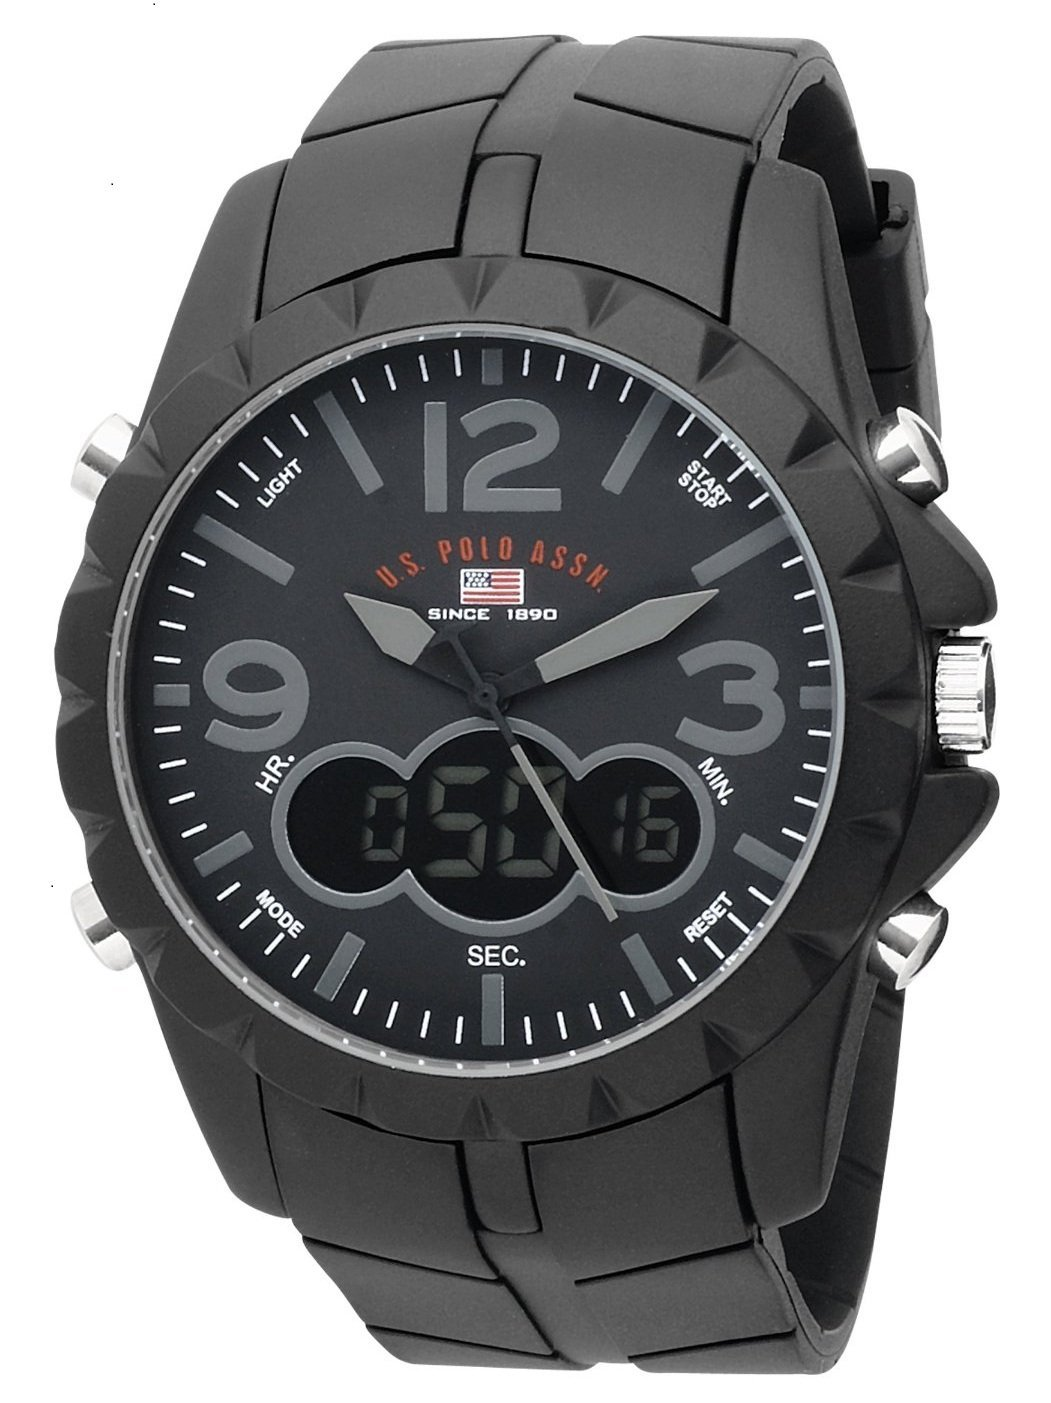 u s polo assn men s us9058 analog digital black dial black rubber strap watch